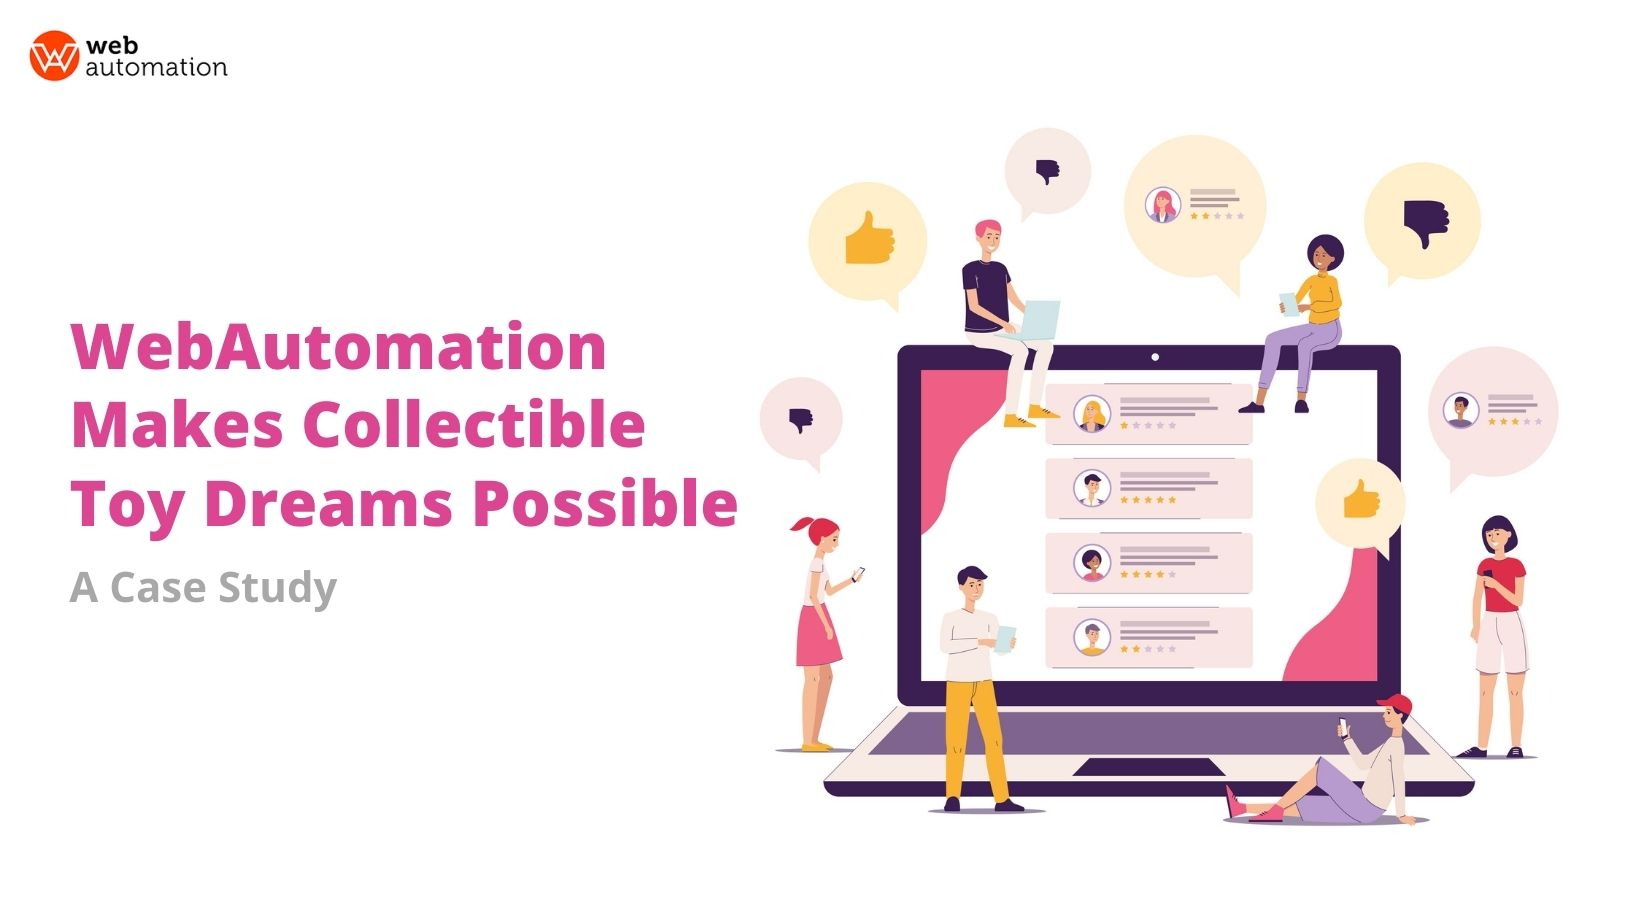 webautomation makes collectible toy dreams possible: a case study